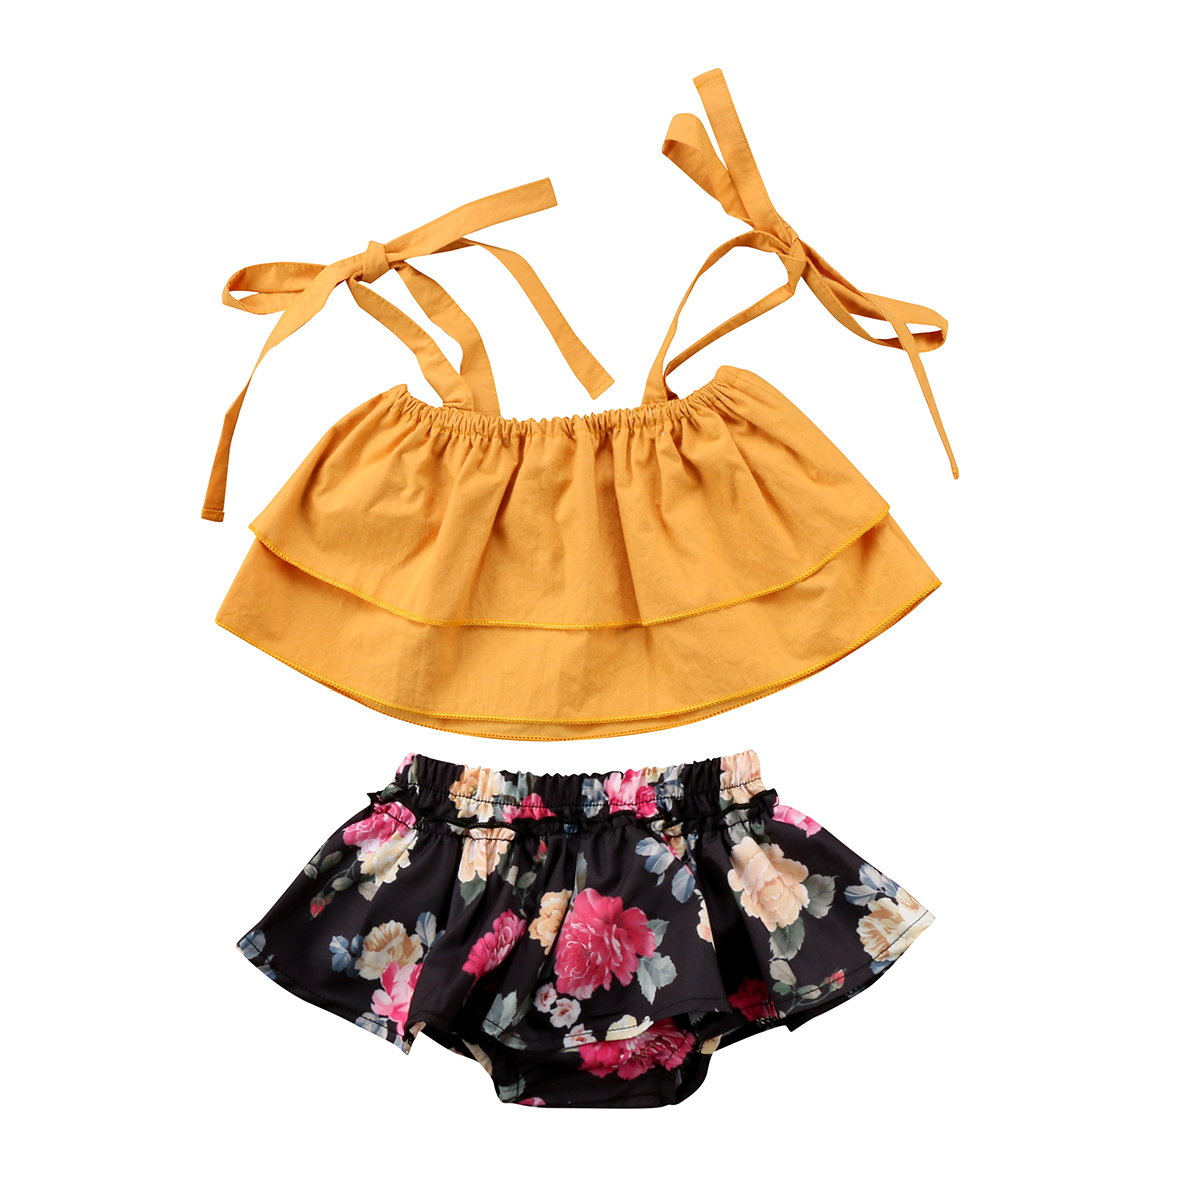 Ddler baby kids girls sister clothes sets strap tops sleeveless vest floral shorts 2pcs clothing